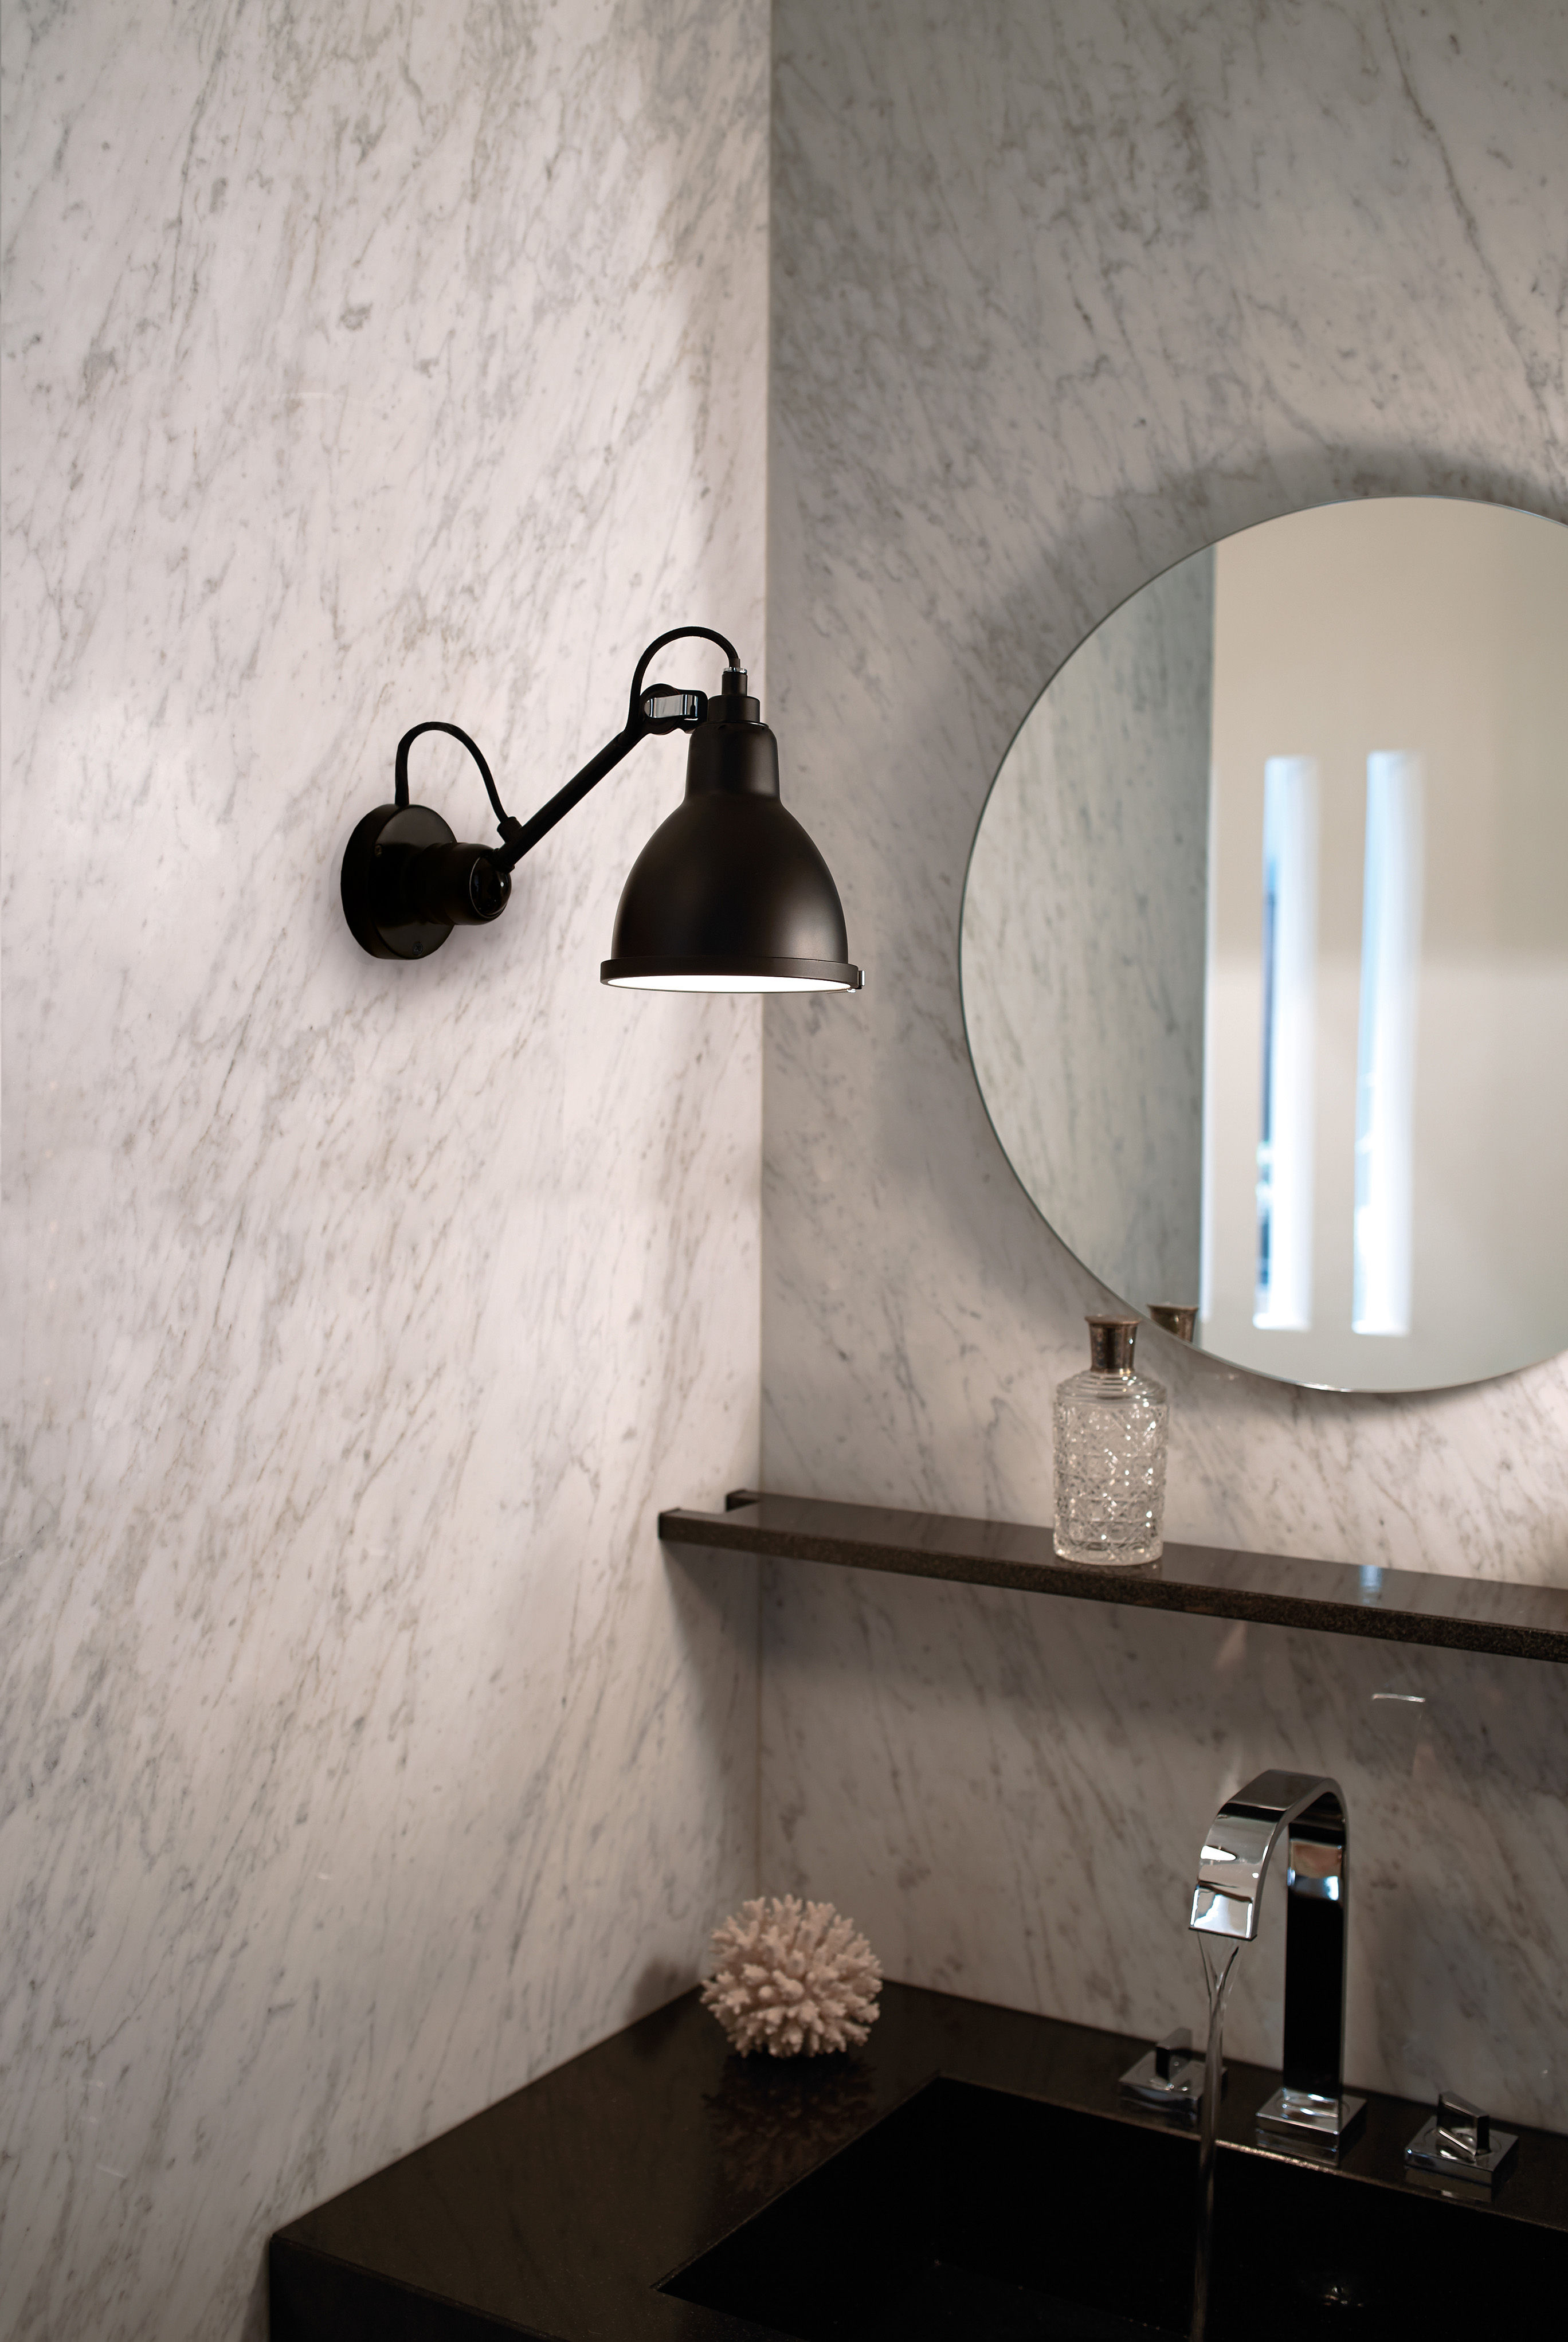 Salle De Bain Slide Share ~ n 304 wall light bathroom white by dcw ditions made in design uk